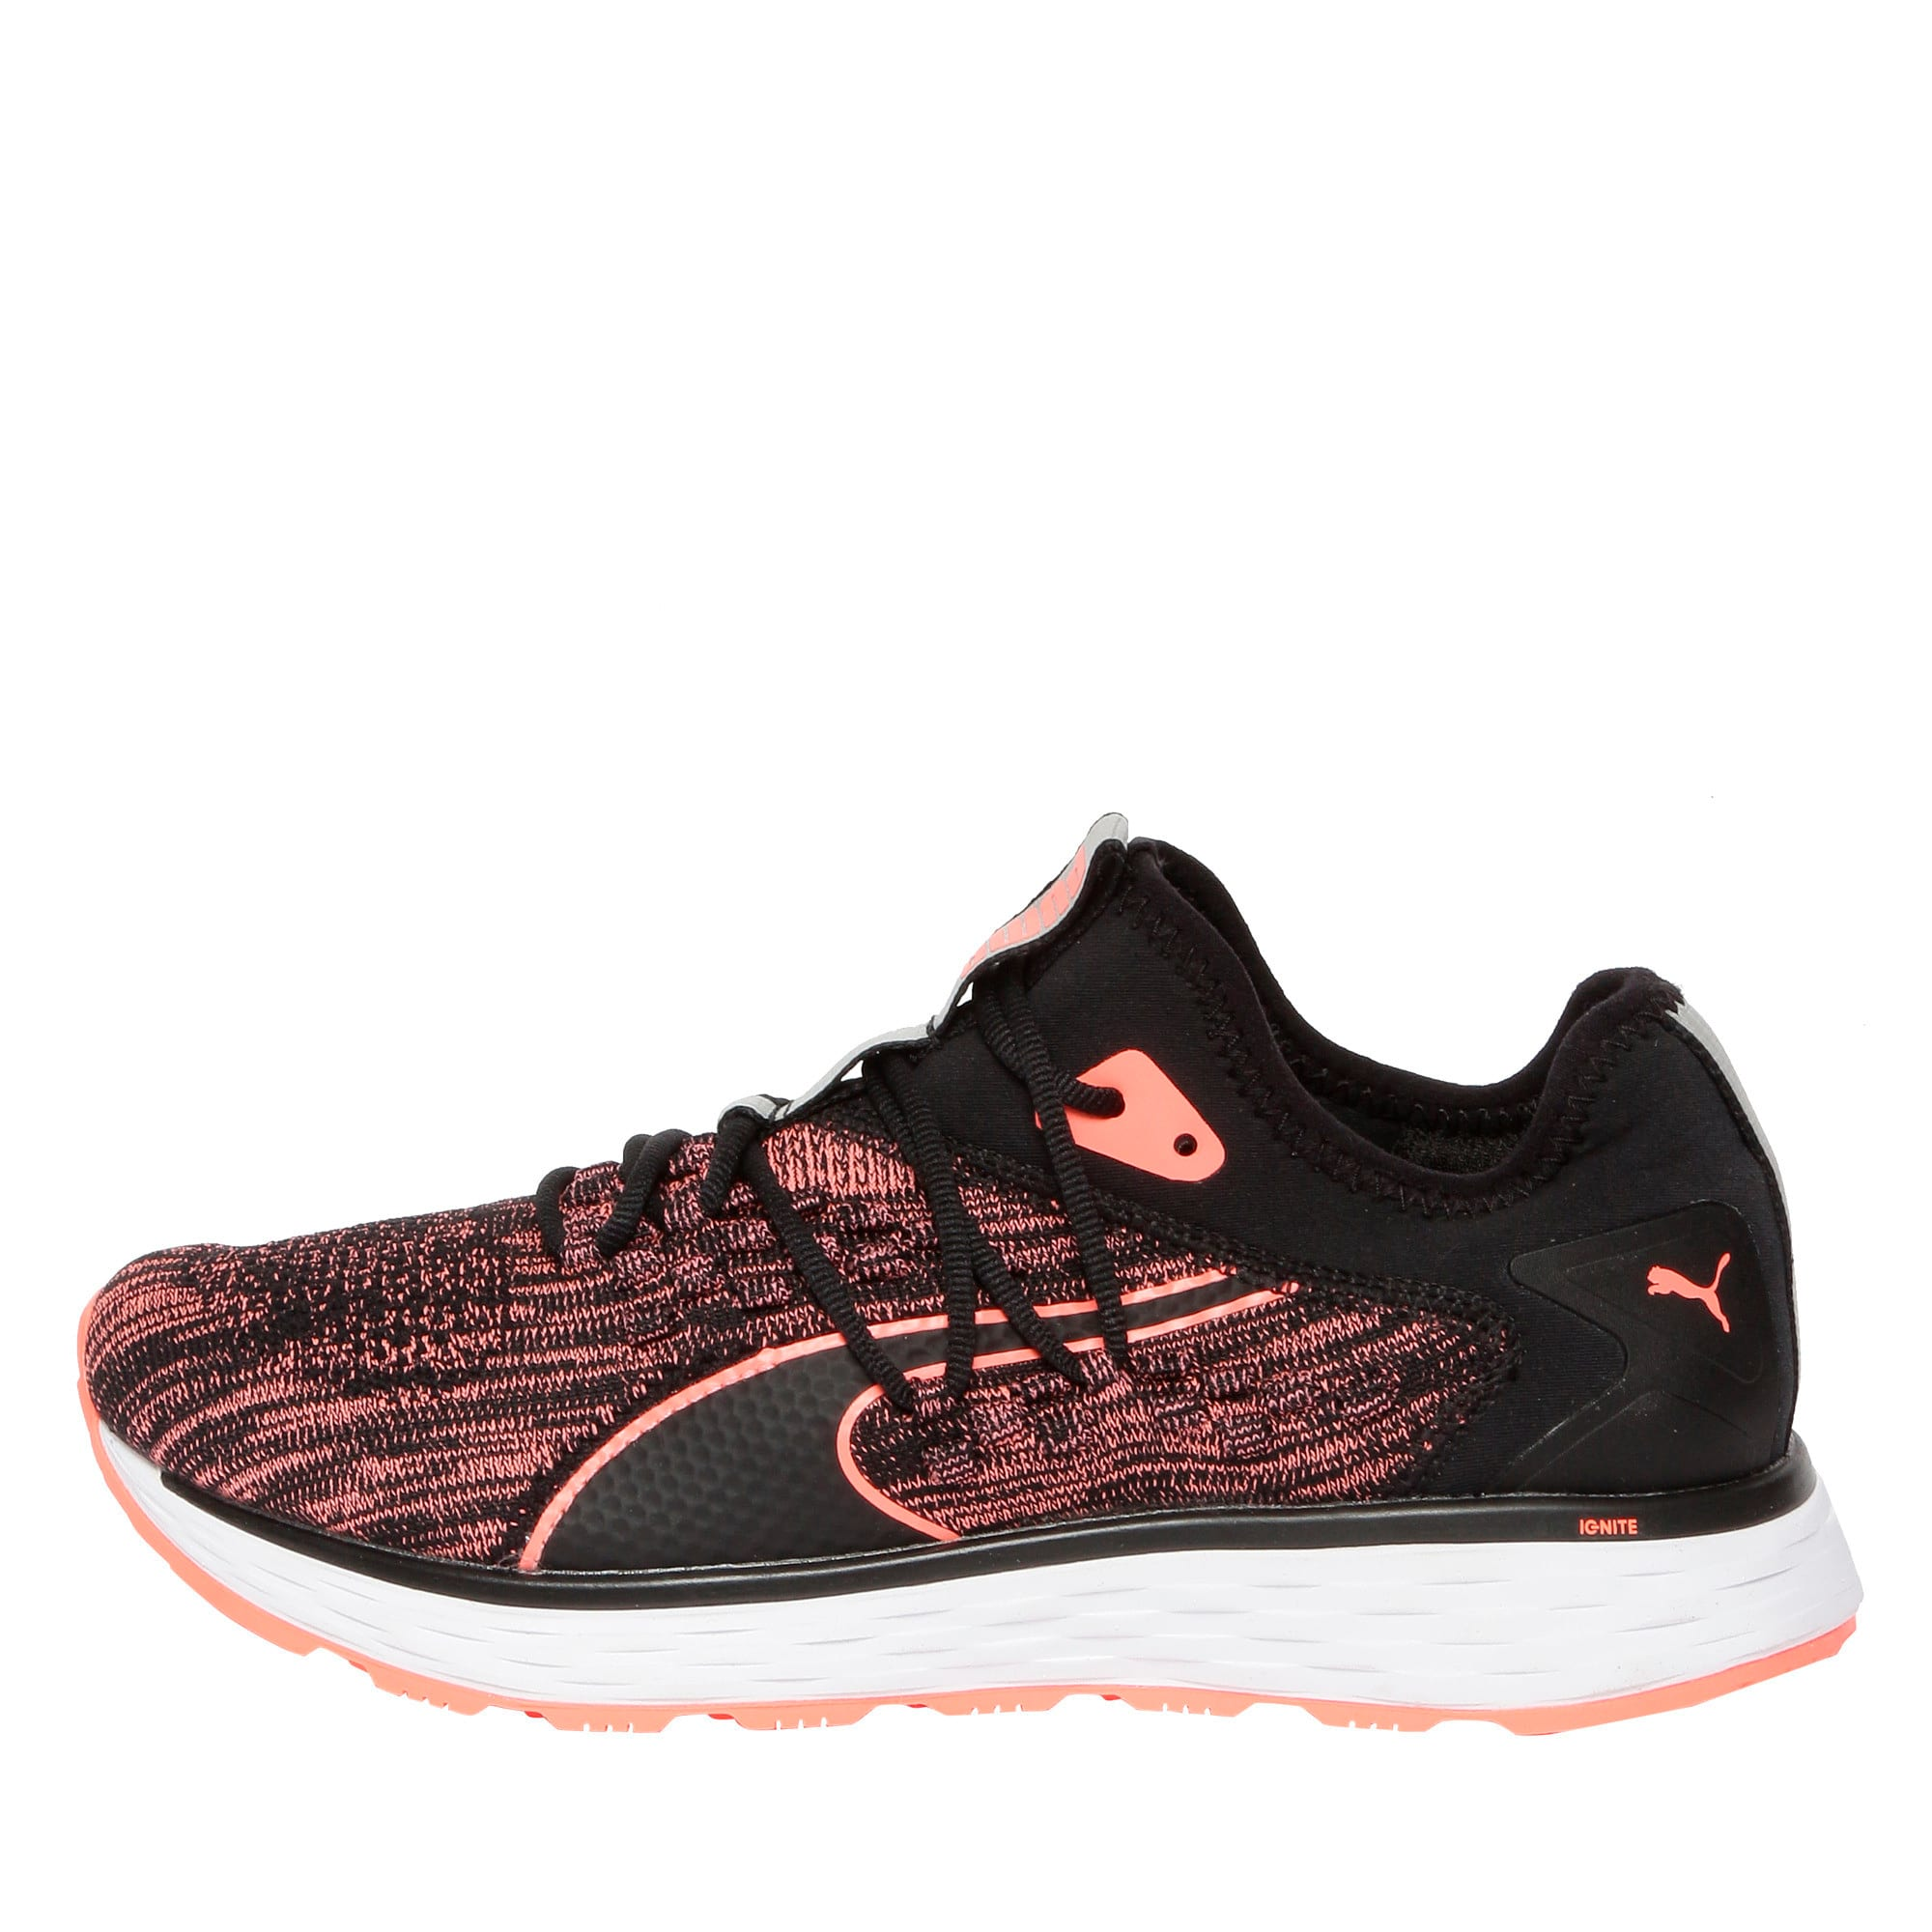 Thumbnail 1 of SPEED FUSEFIT Women's Running Shoes, Puma Black-Fluo Peach, medium-IND